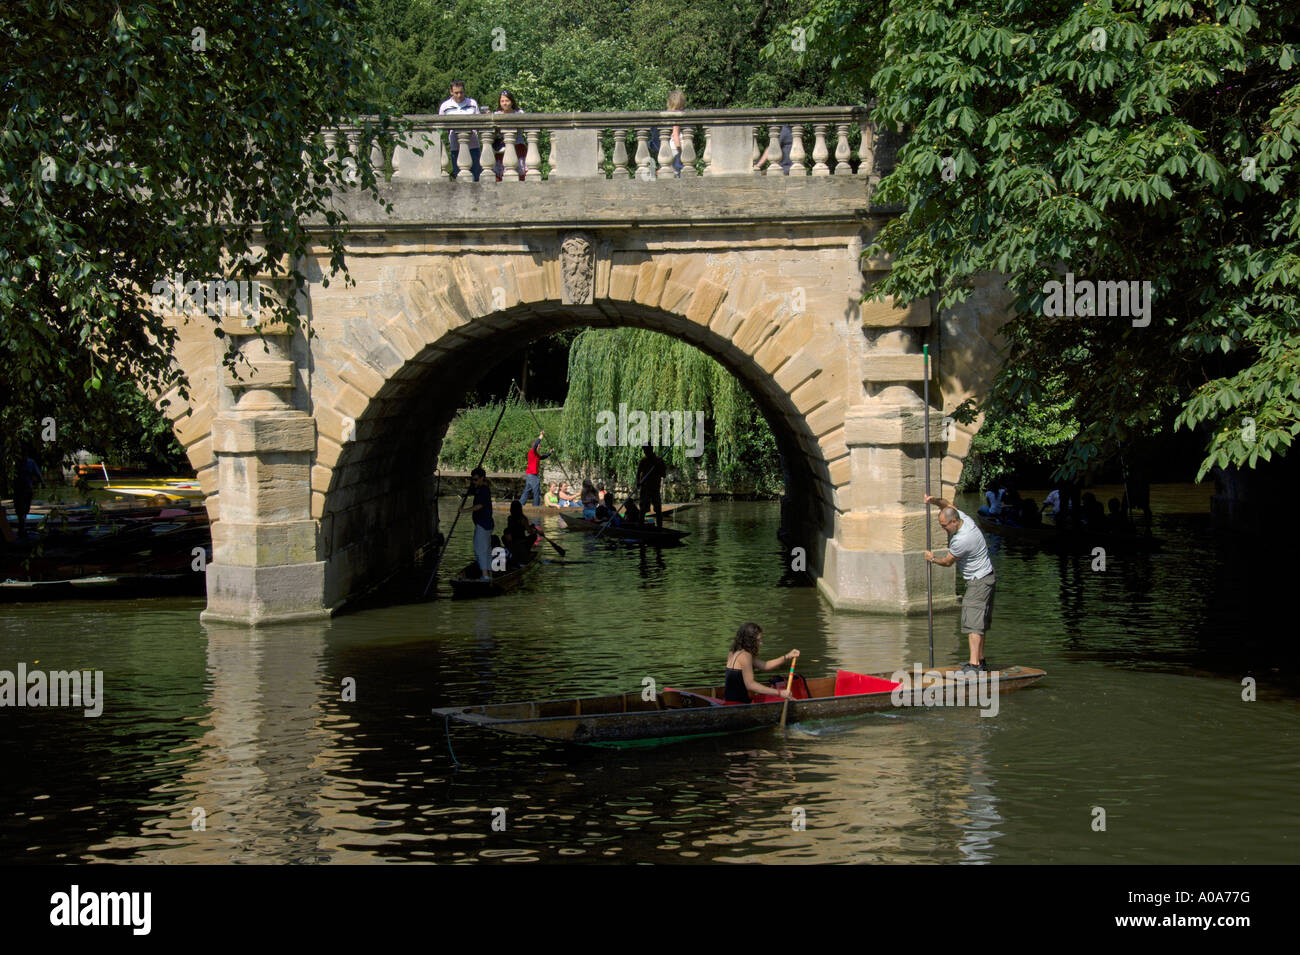 Punts On River Cherwell At Botanic Gardens Looking To Magdalen Bridge  Oxford University Oxford England